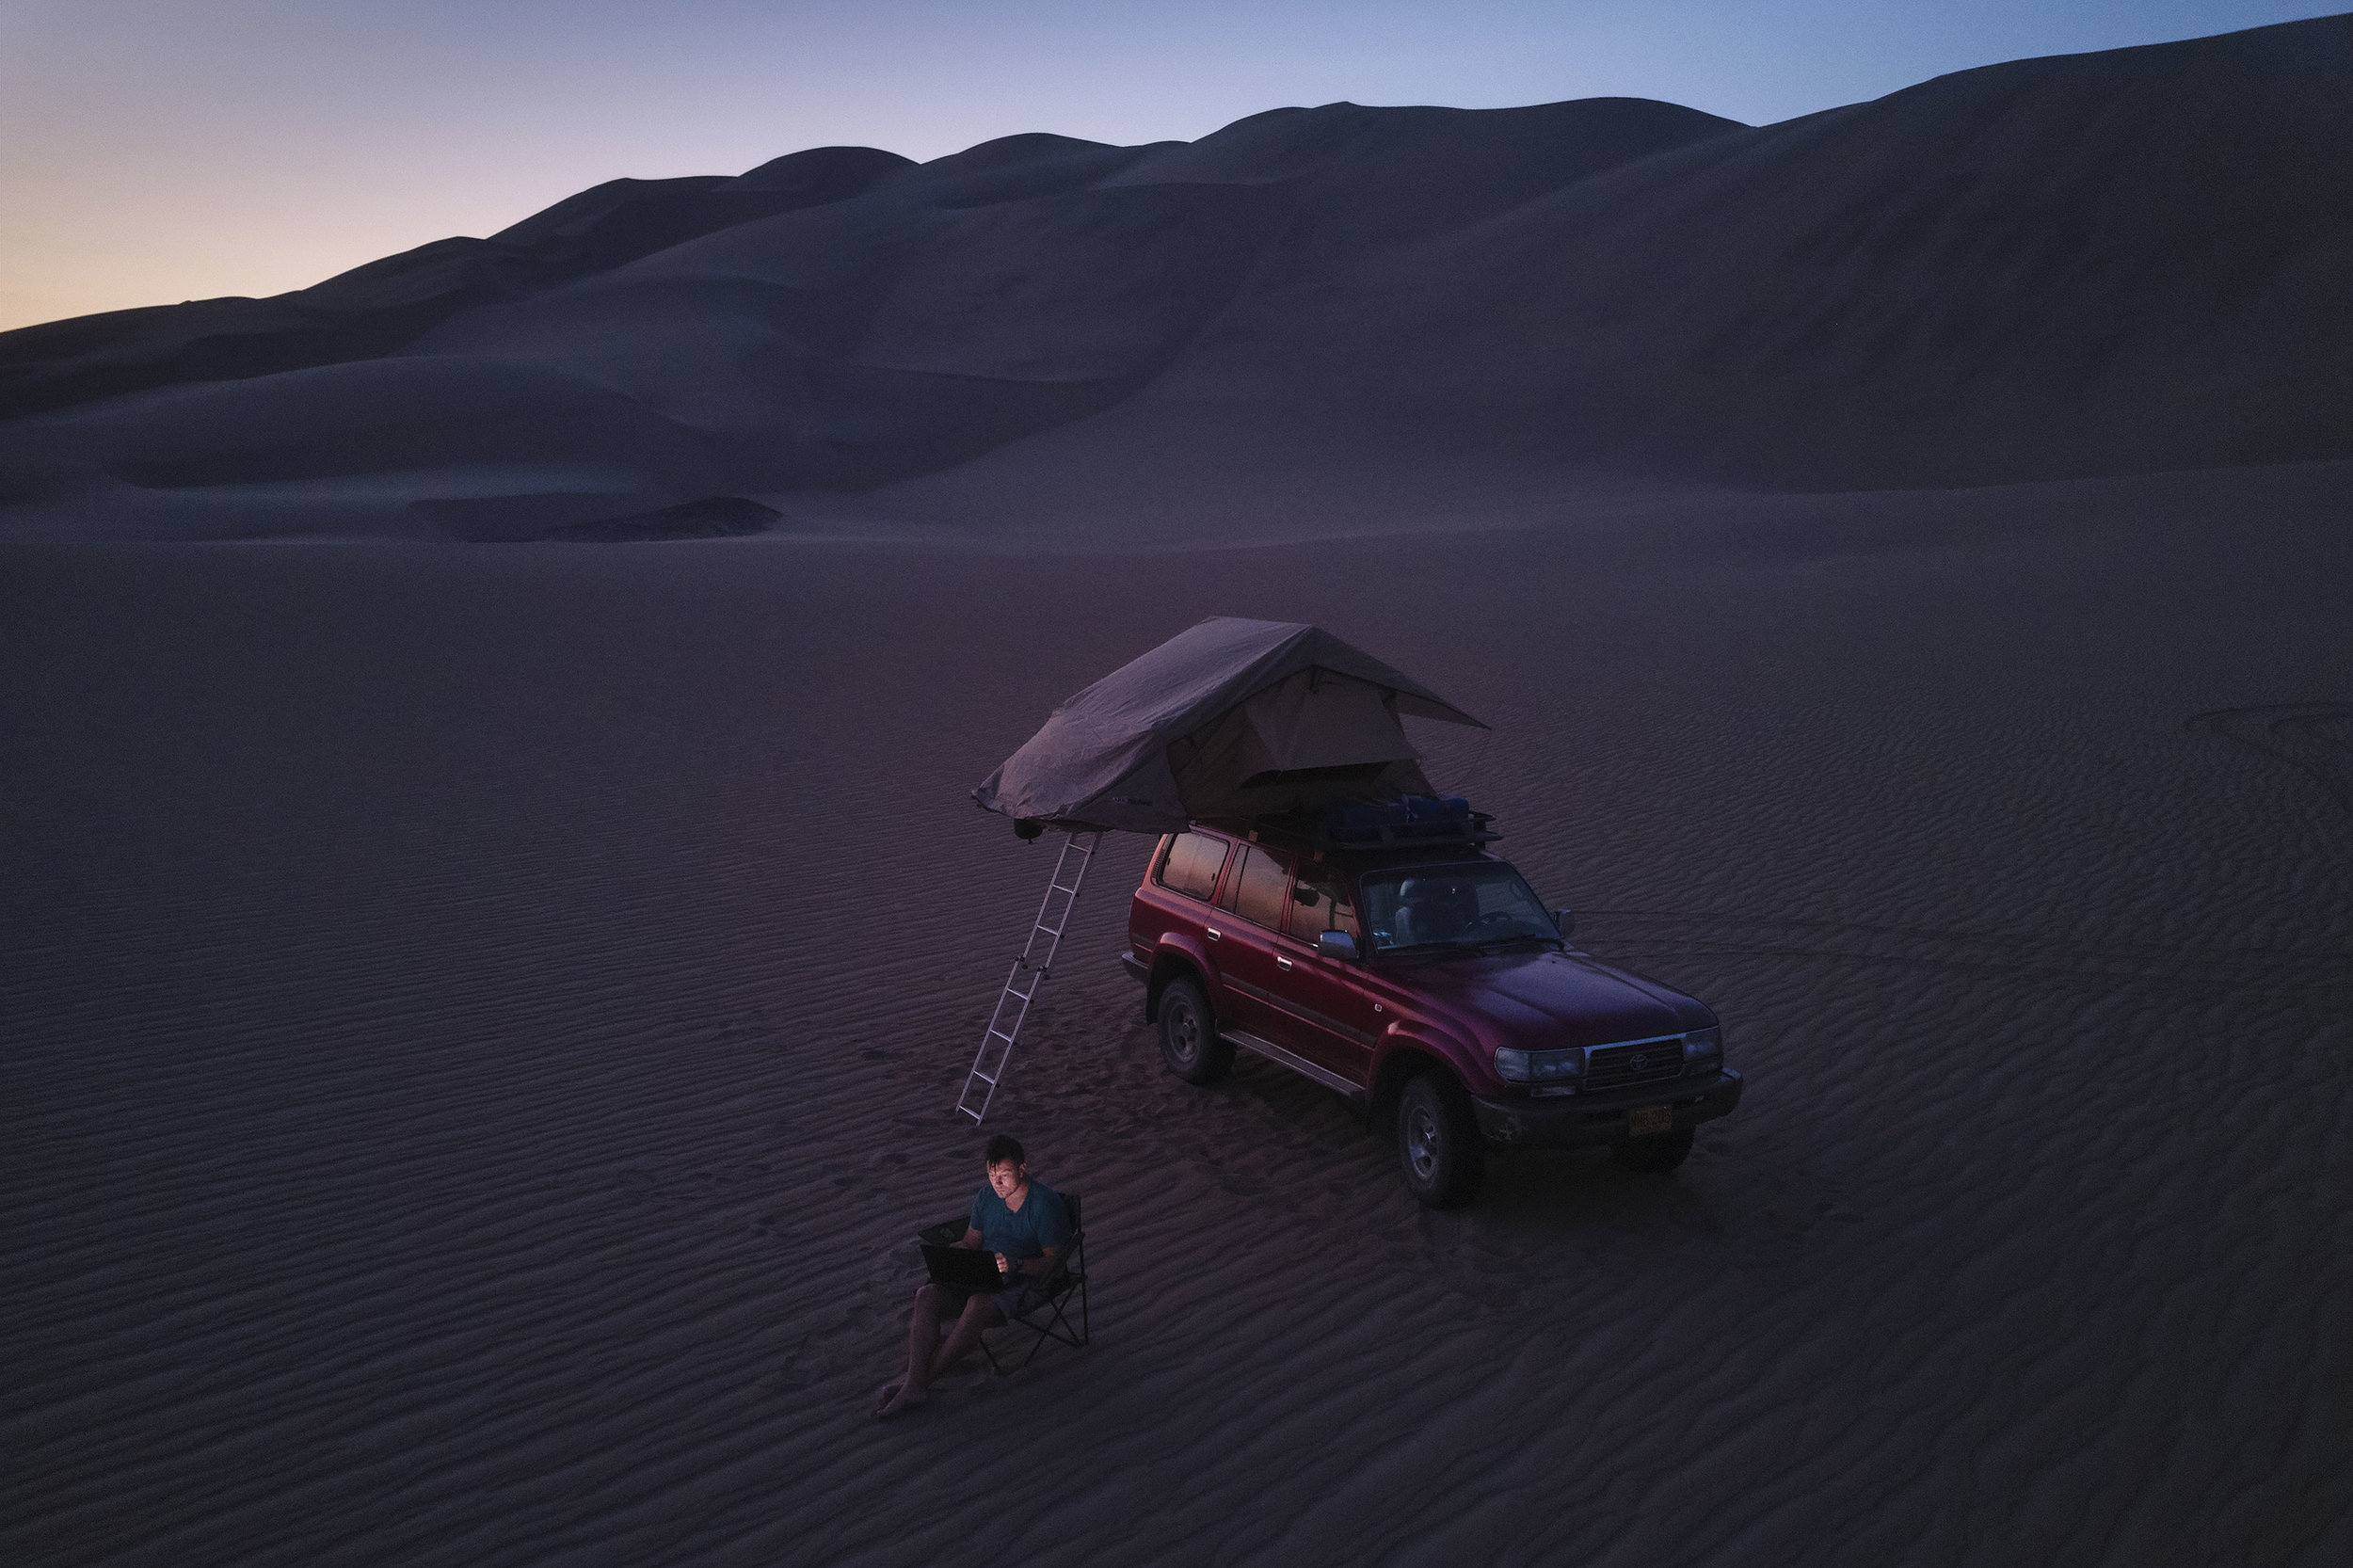 Mitchell camping setup in the desert of Peru